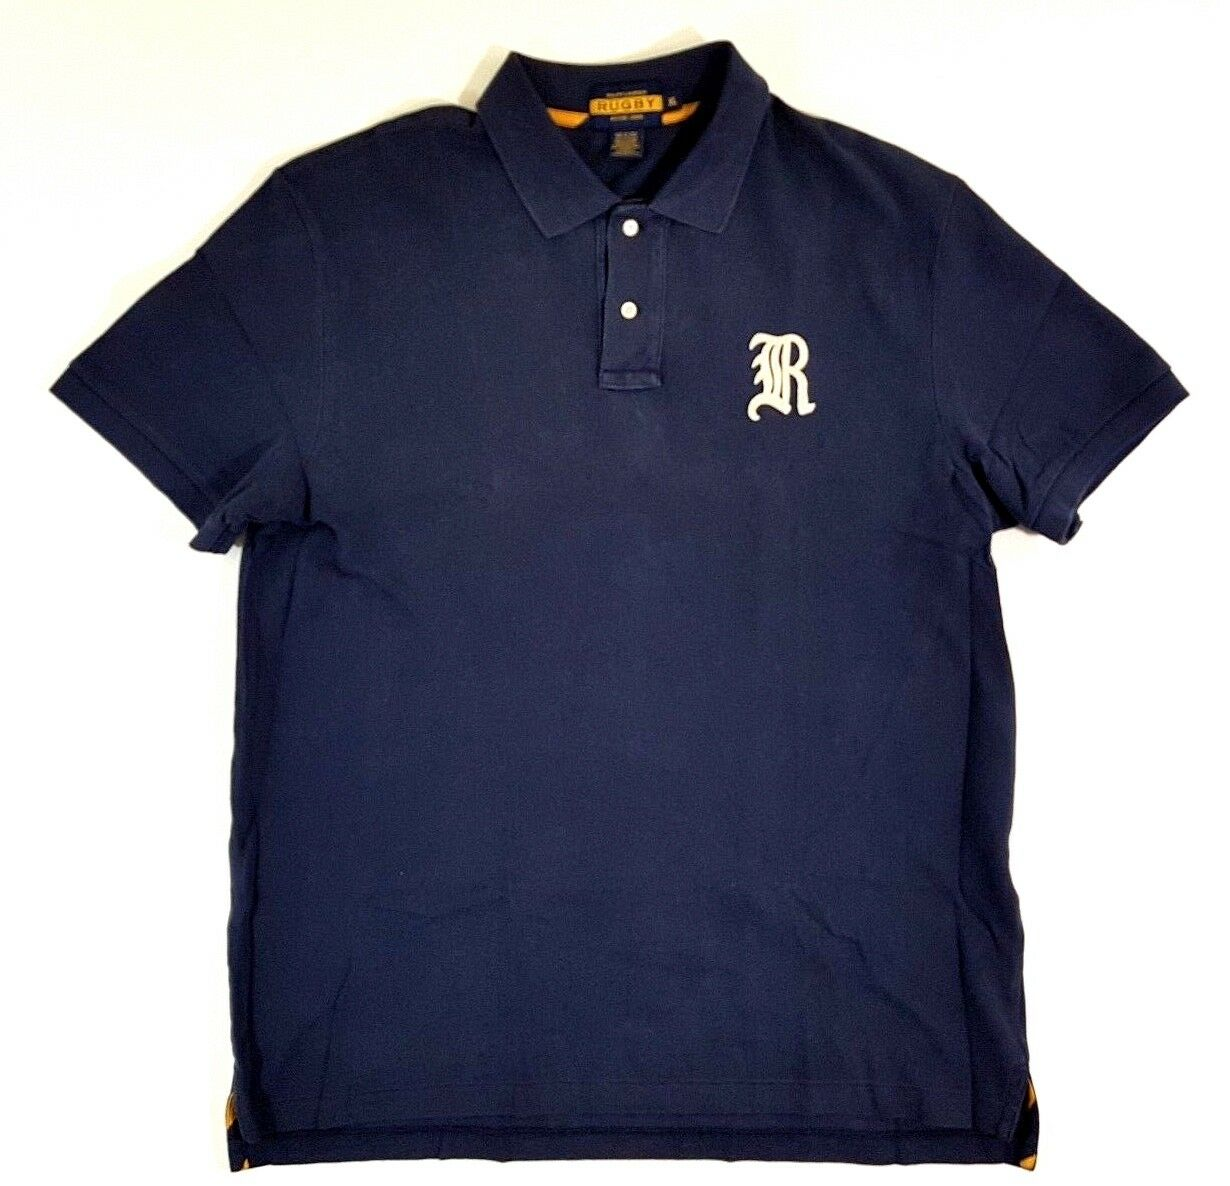 Rugby Ralph Lauren Gothic R Navy bluee White Size XL Mens Polo Shirt Vintage